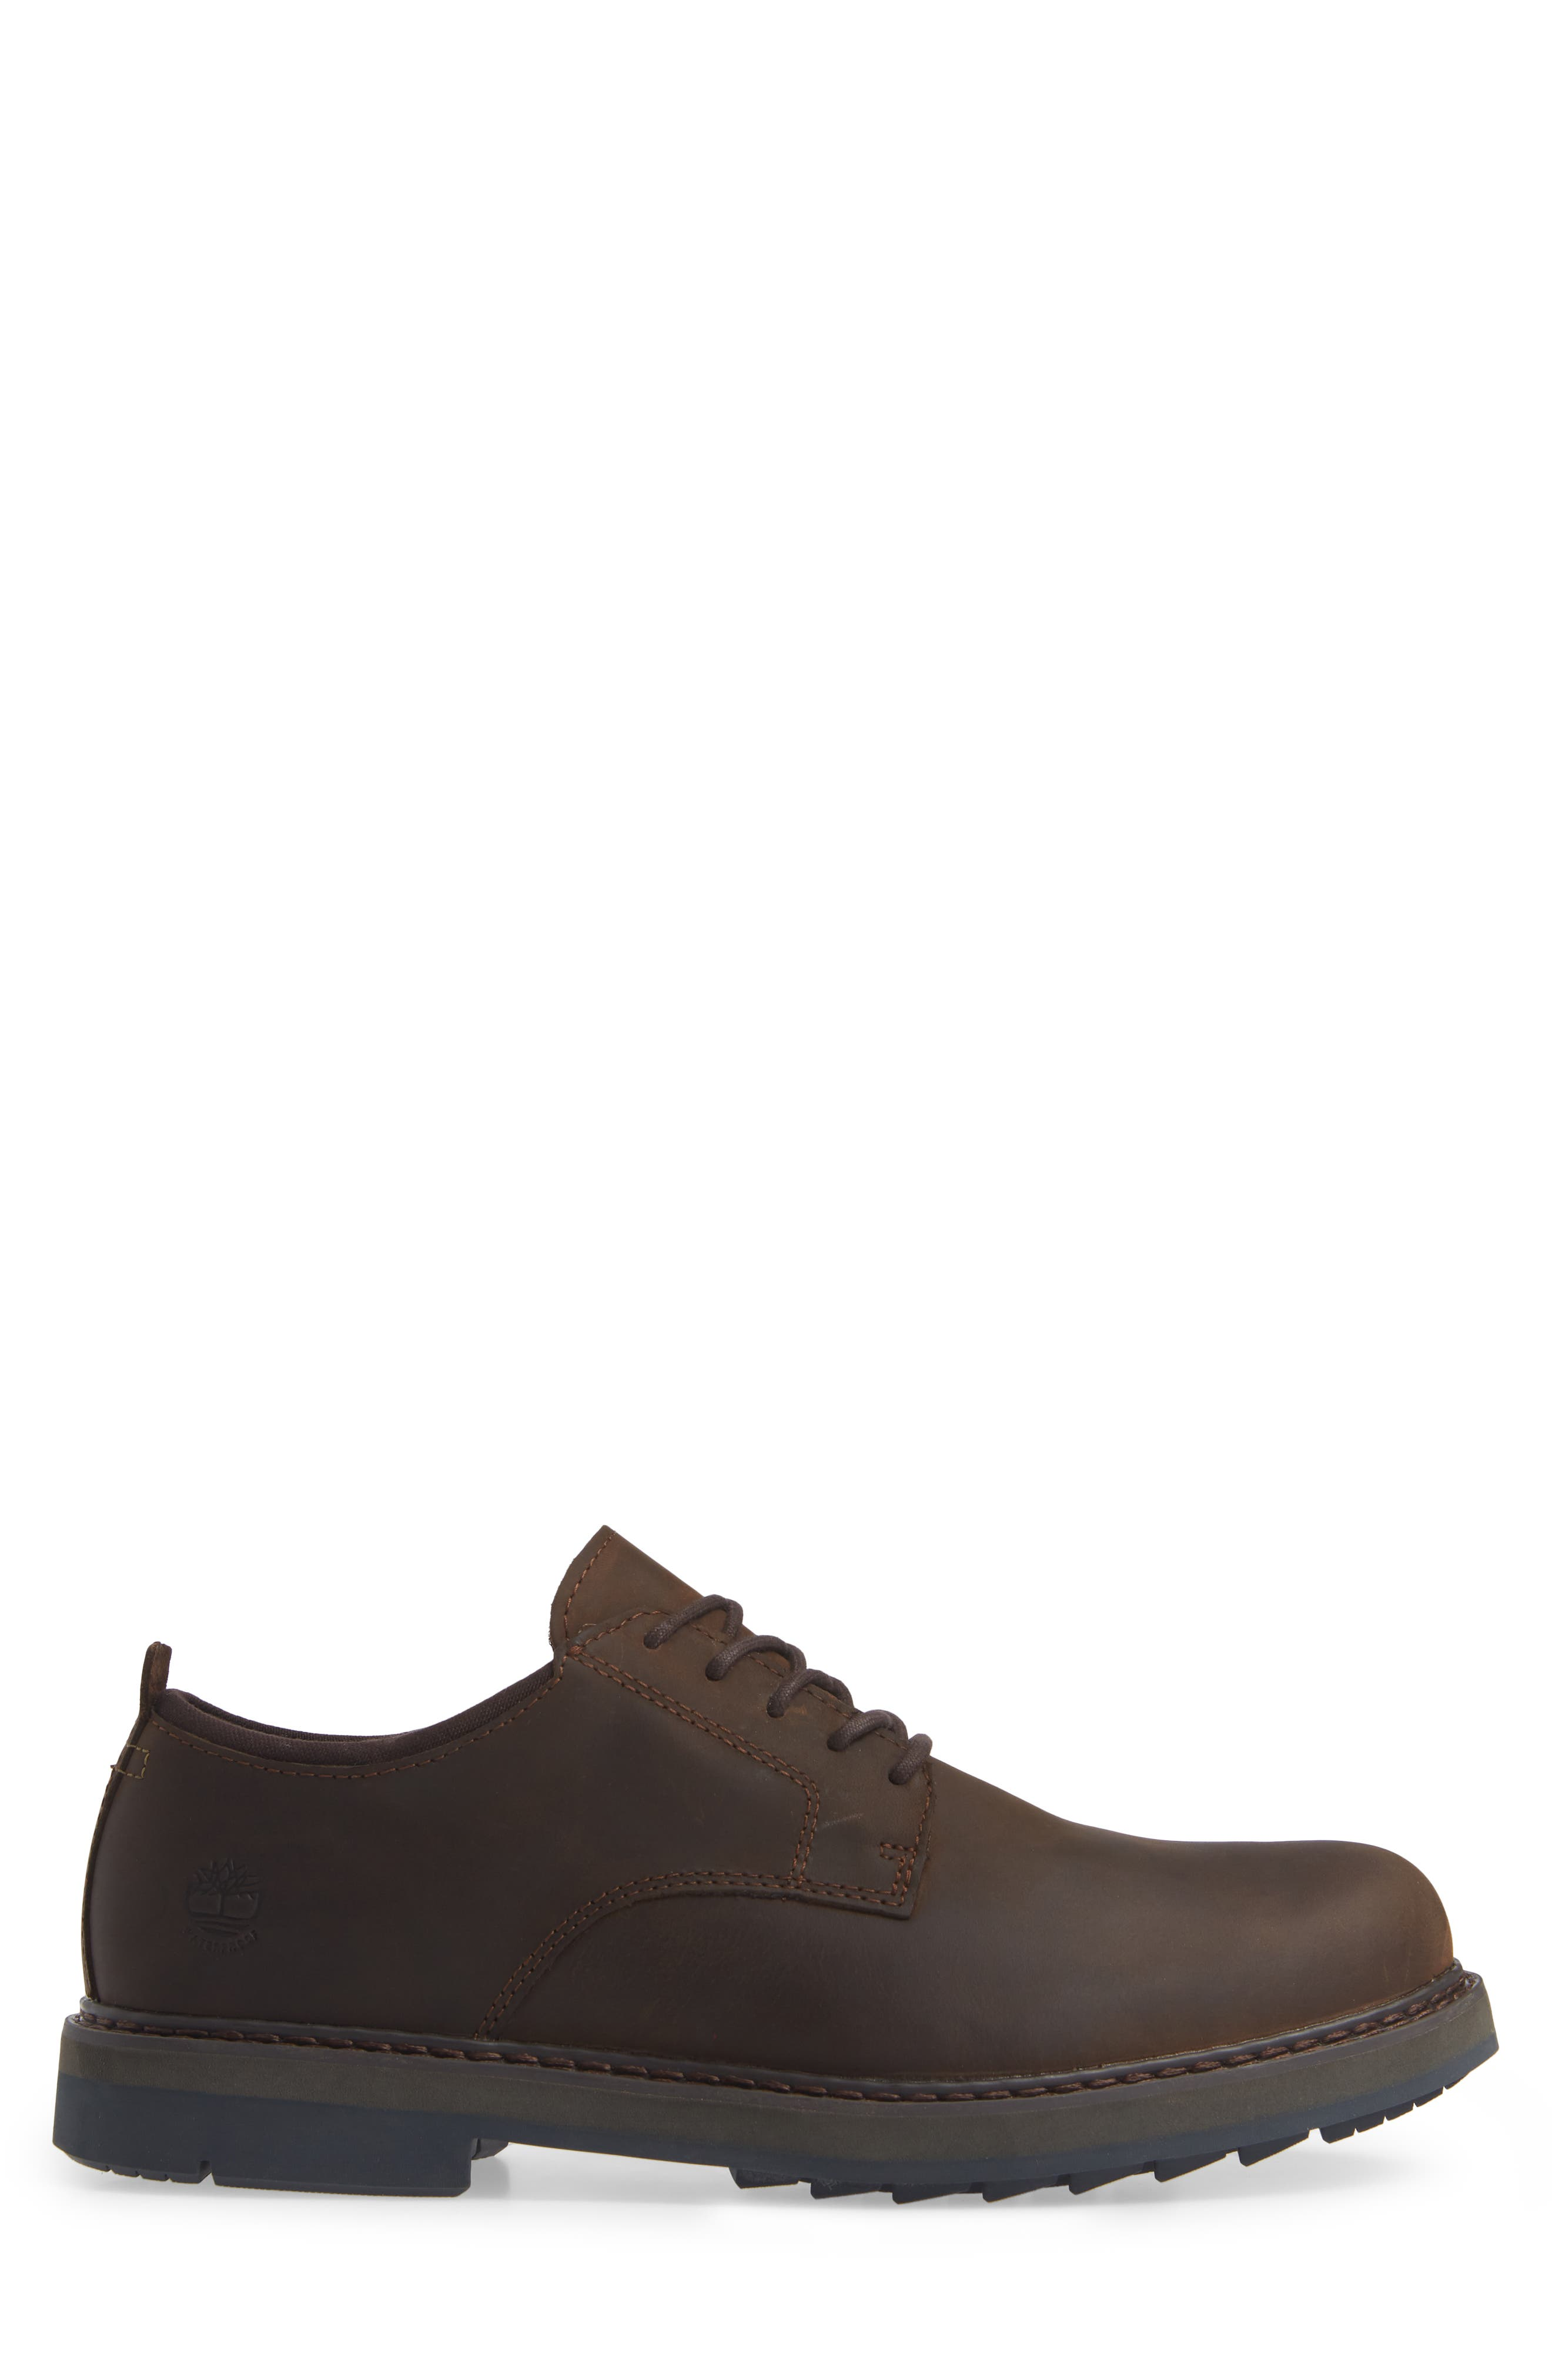 Squall Canyon Waterproof Plain Toe Derby,                             Alternate thumbnail 3, color,                             BROWN LEATHER